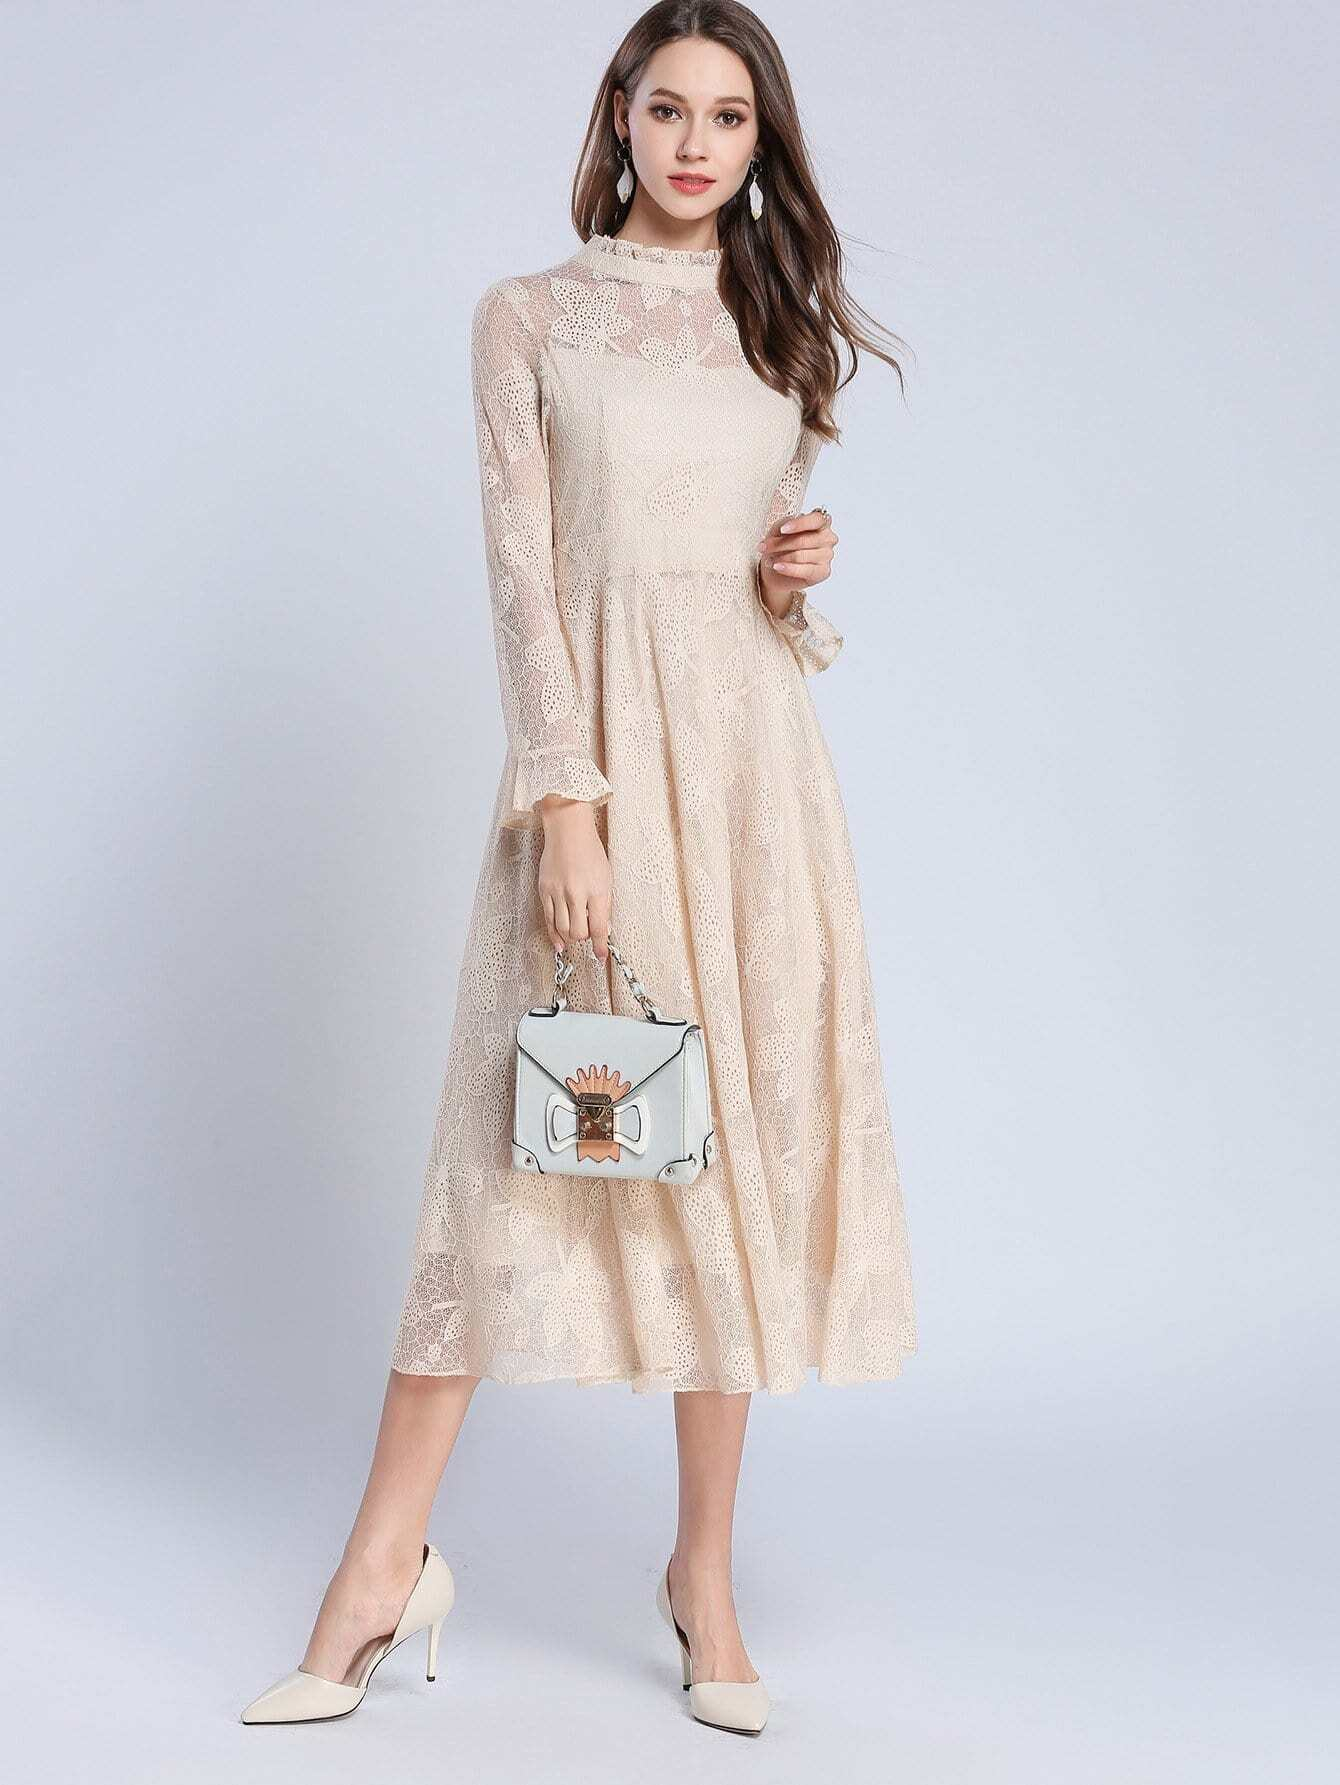 Ruffle Cuff Mock Neck Lace Dress